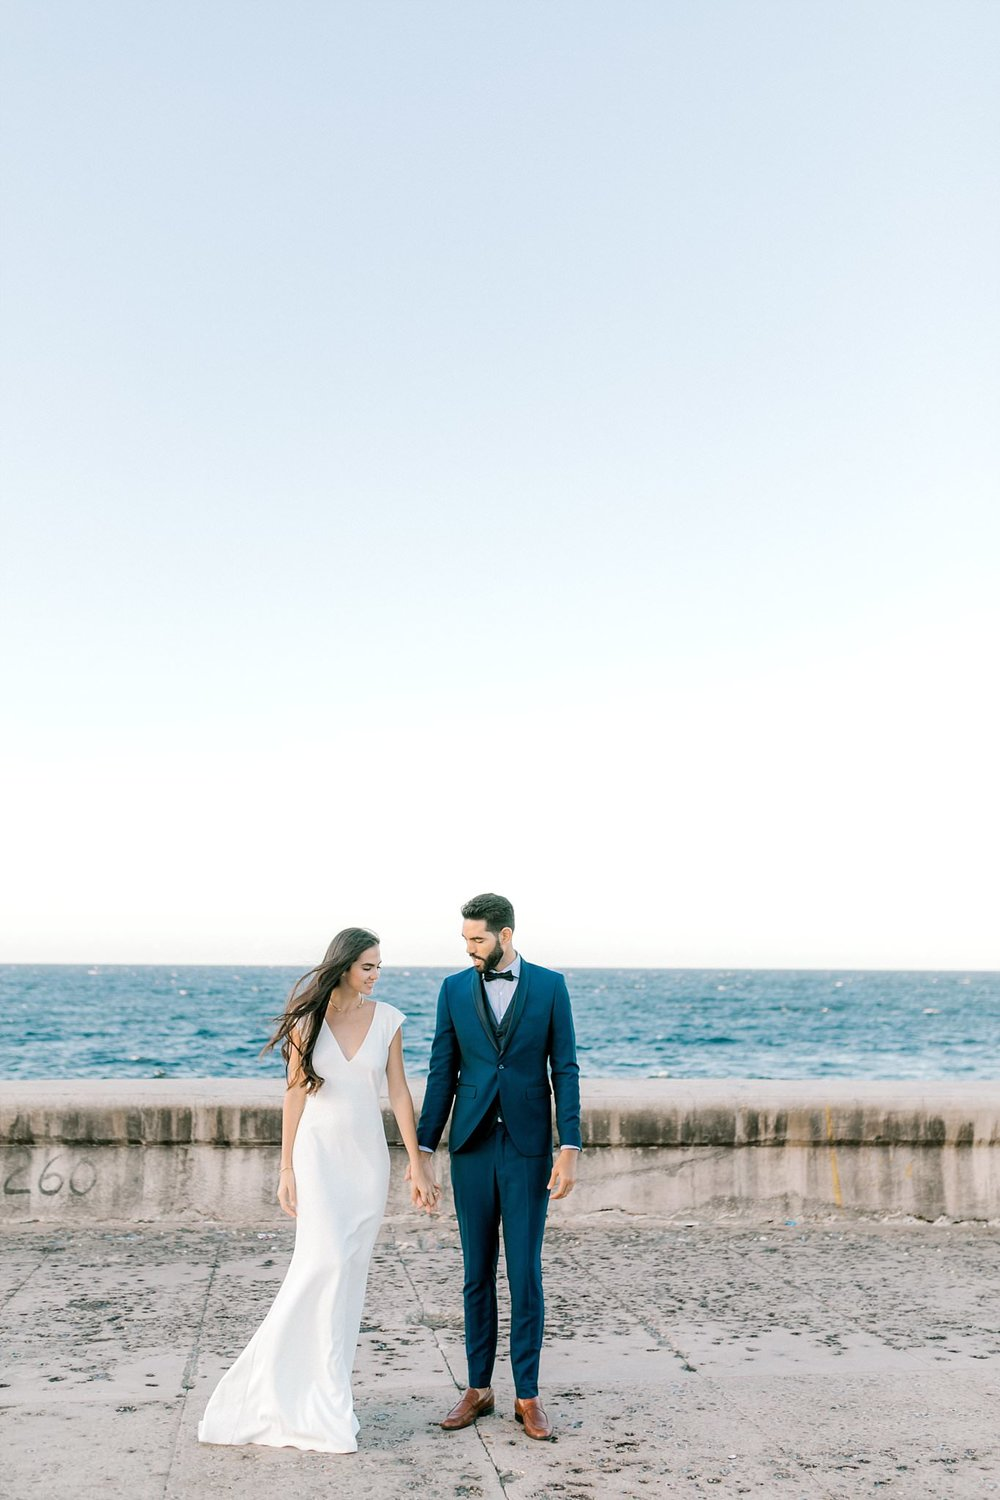 Magdalena Studios Destination Wedding Photographer Havana Cuba Stylish Elopement7.jpg